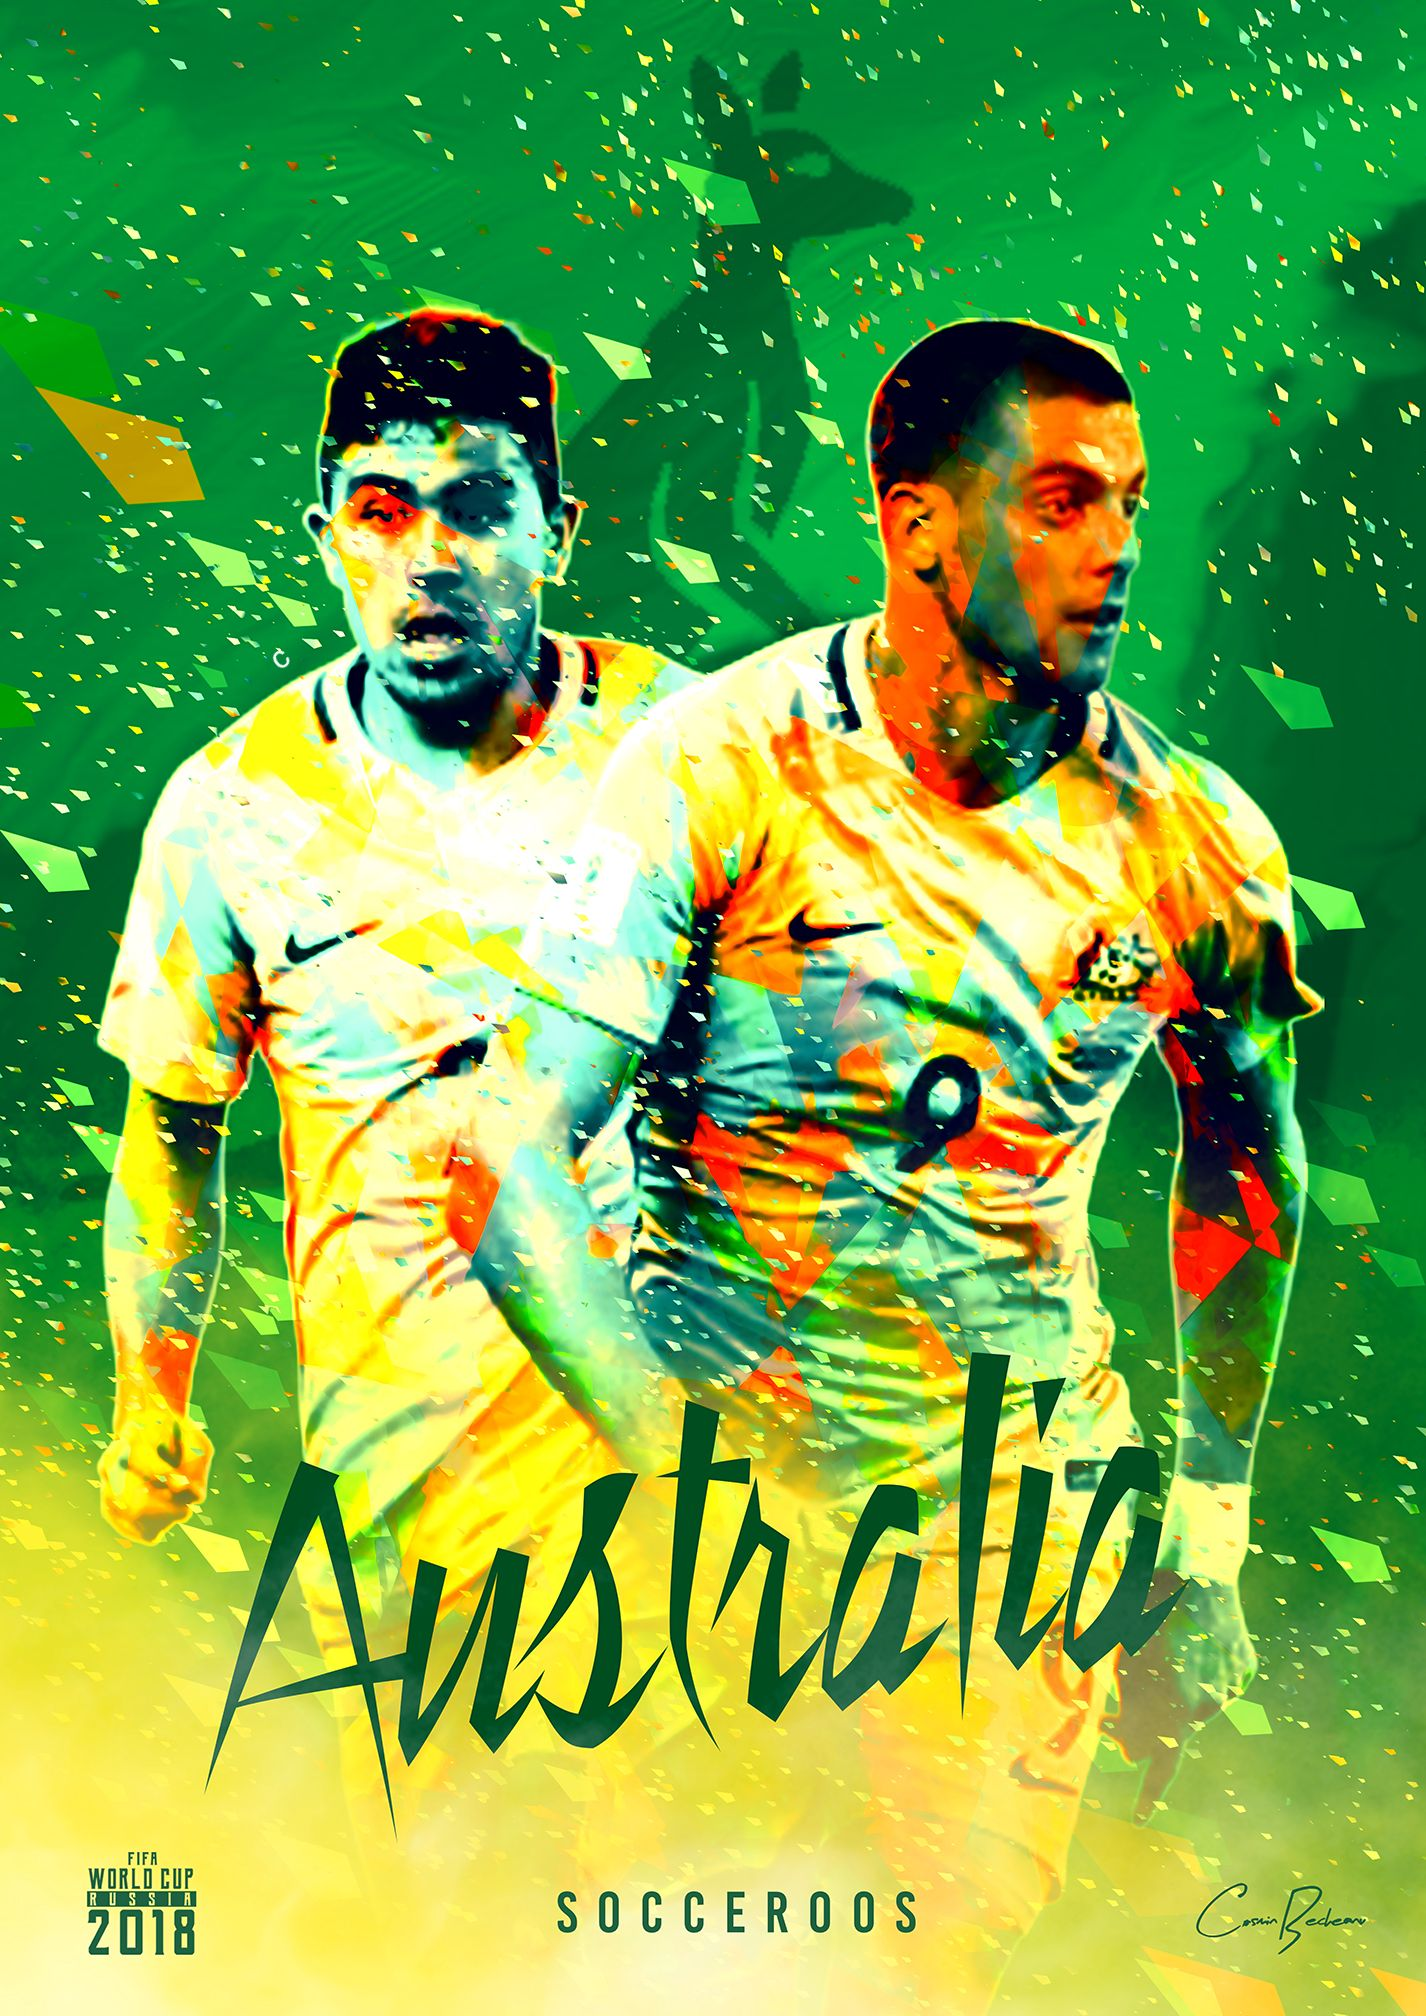 Socceroos Wc 2018 Australia World Cup 2018 Teams Fifa Teams World Cup